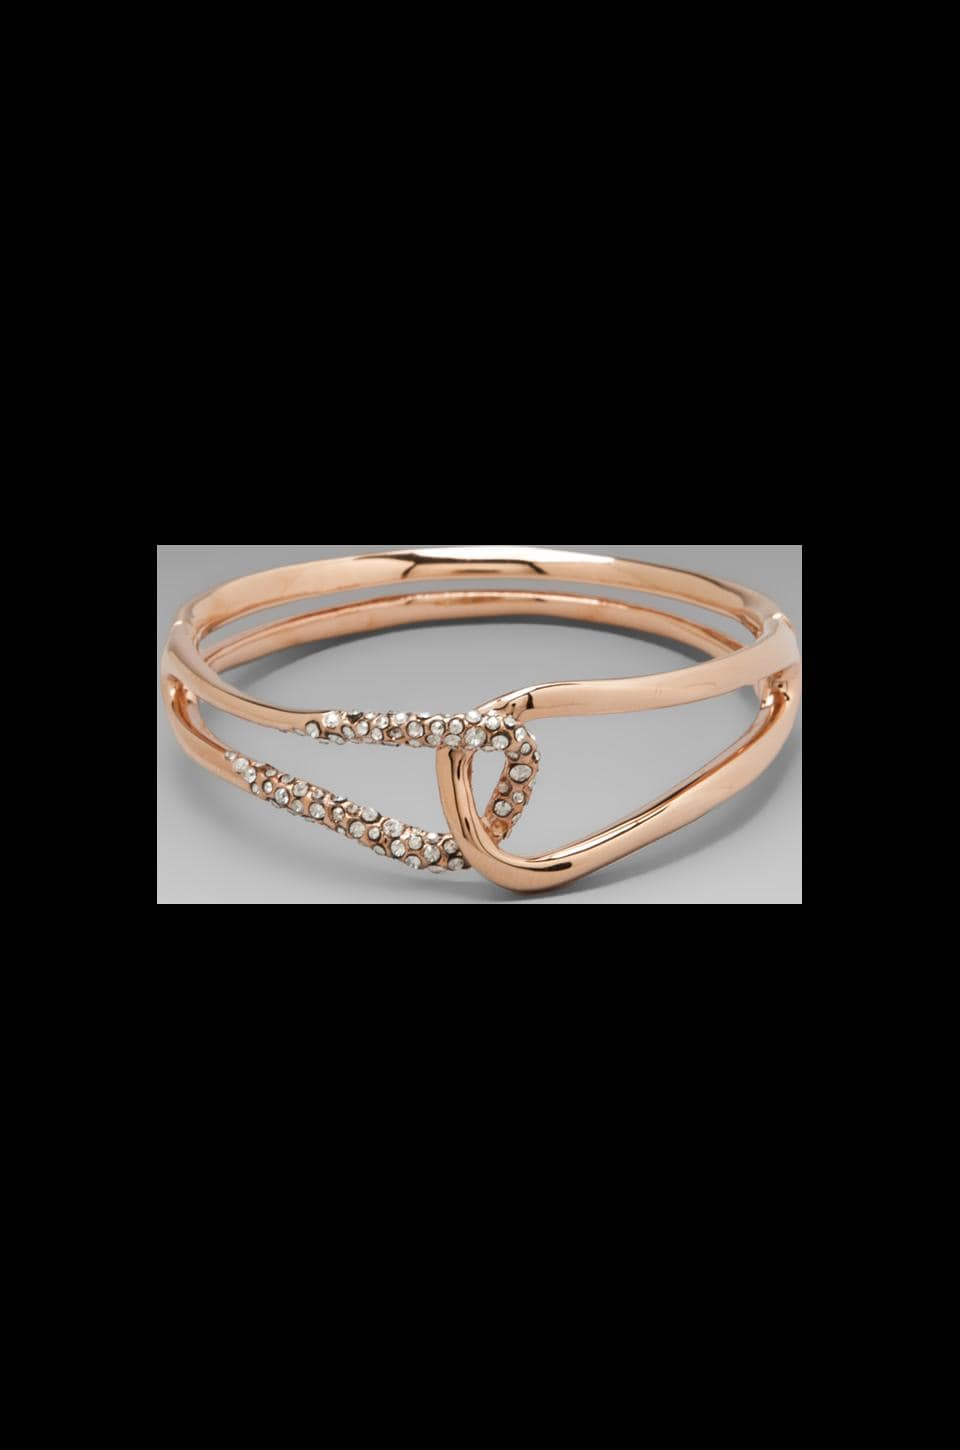 Alexis Bittar Liquid Rose Gold Interlocked Bracelet